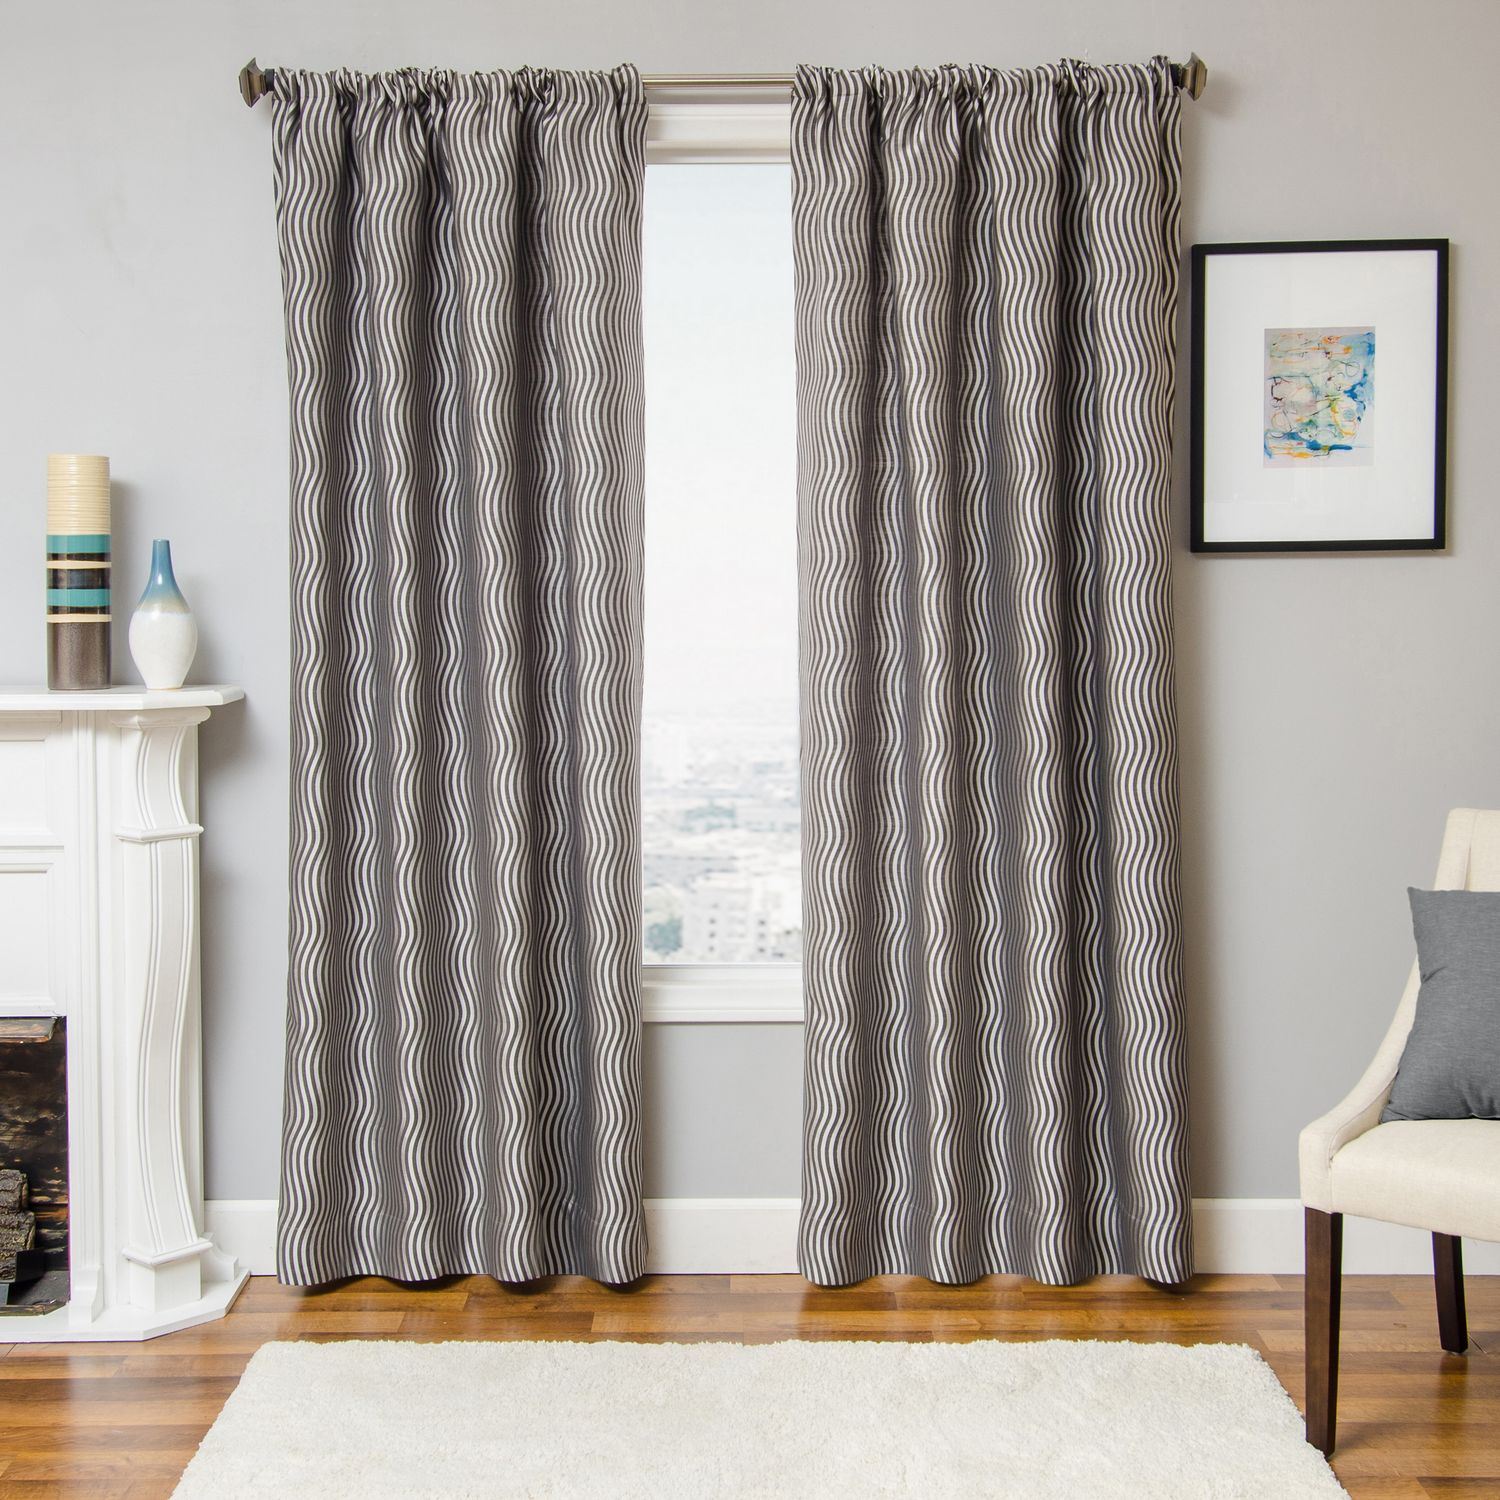 Softline Home Fashions Palmira drapery panels and decorative pillows are constructed in a linen-look woven jacquard.